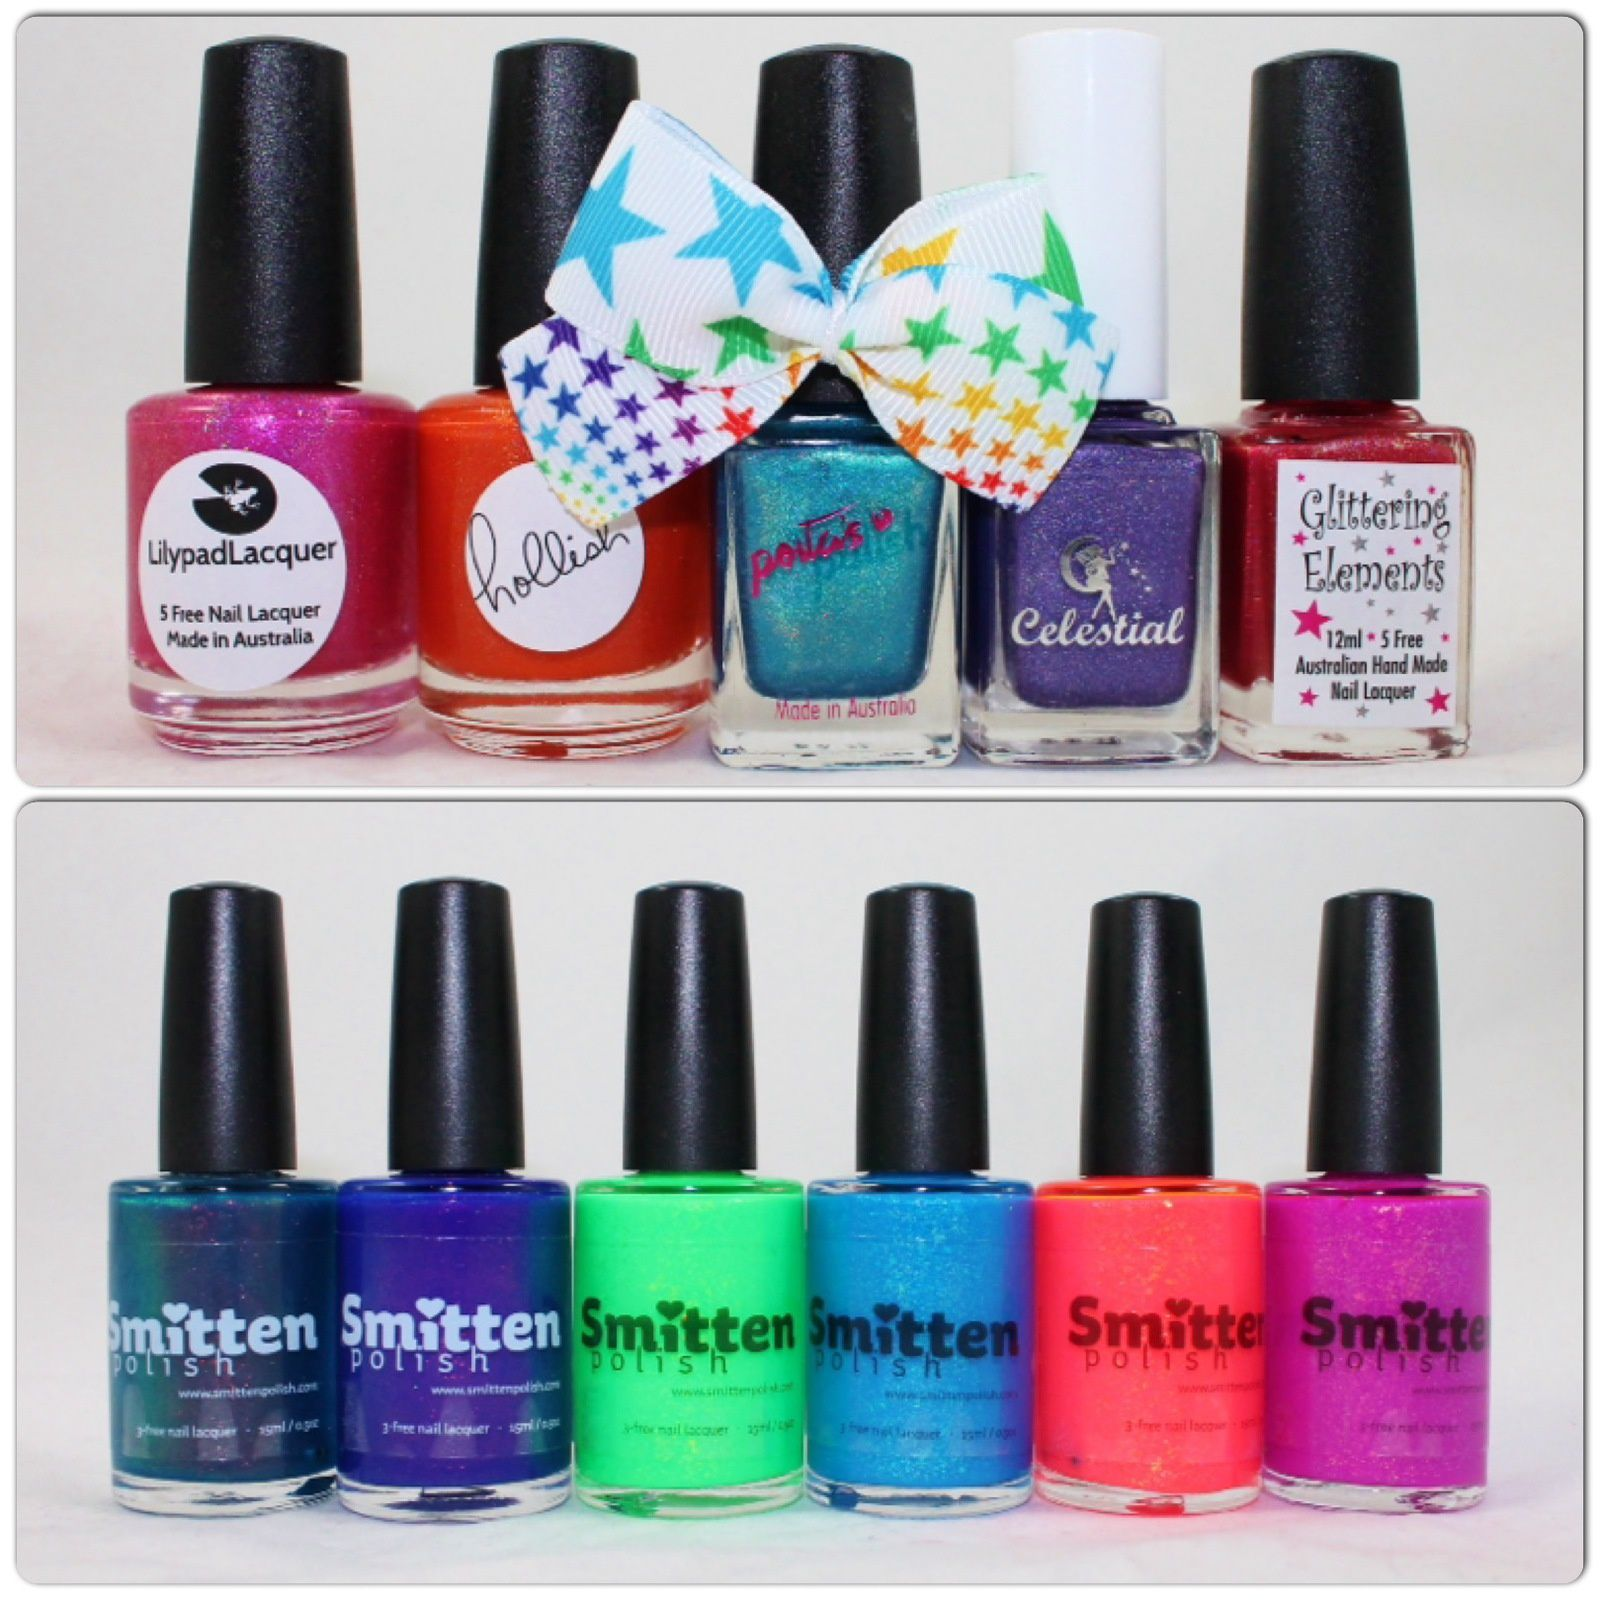 What's Indie Box May 2015. Smitten Polish A Wedding Dress that isn't Bright Turquoise, You Saucy Minx, Terra Opal, Aqua Opal, Ignis Opal, Aer Opal.